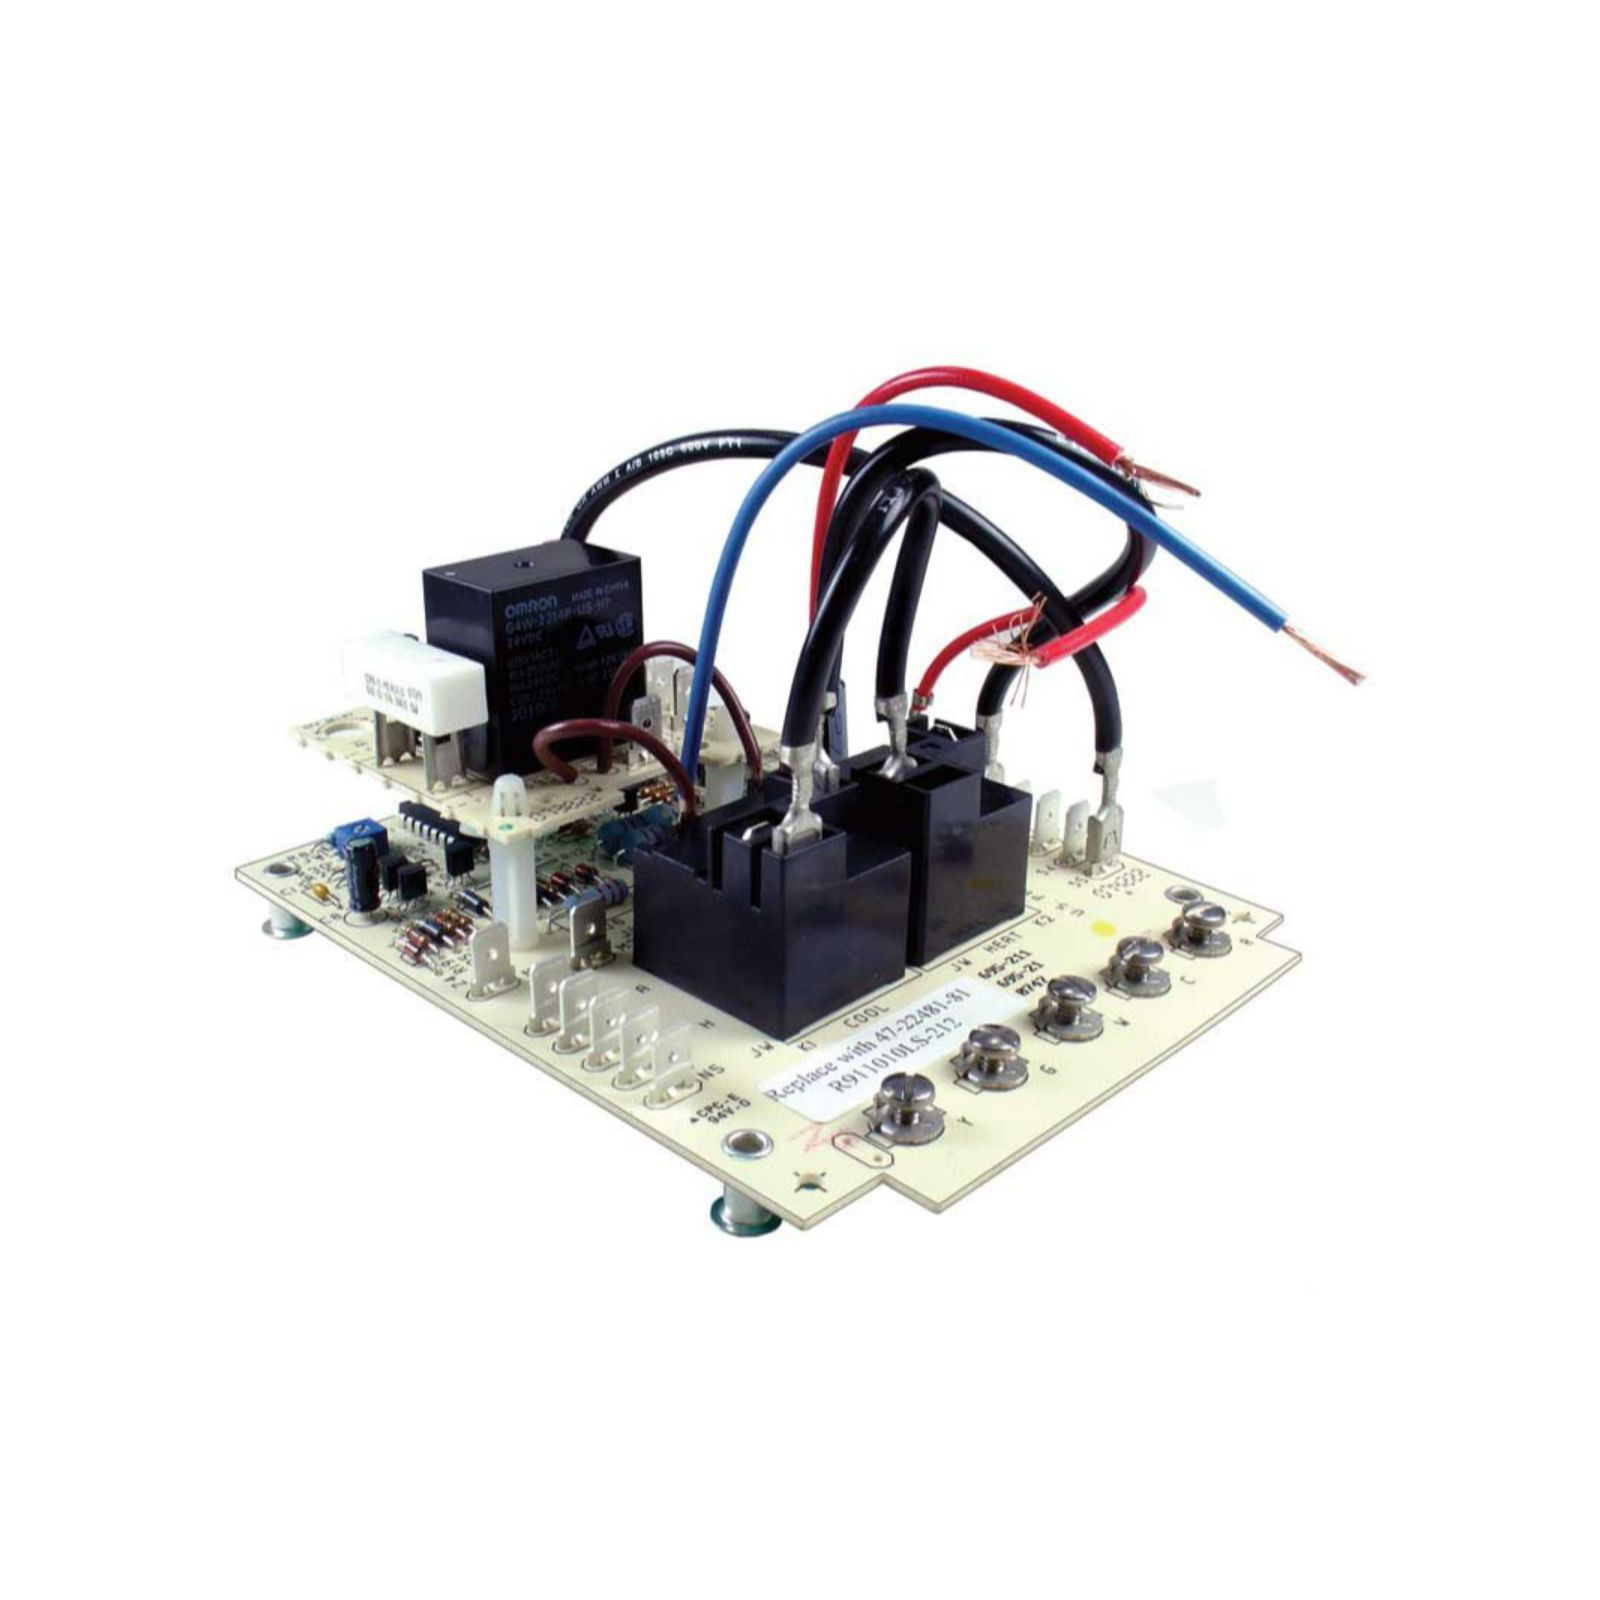 PROTECH 47-22481-81 - Fan Control Board Kit